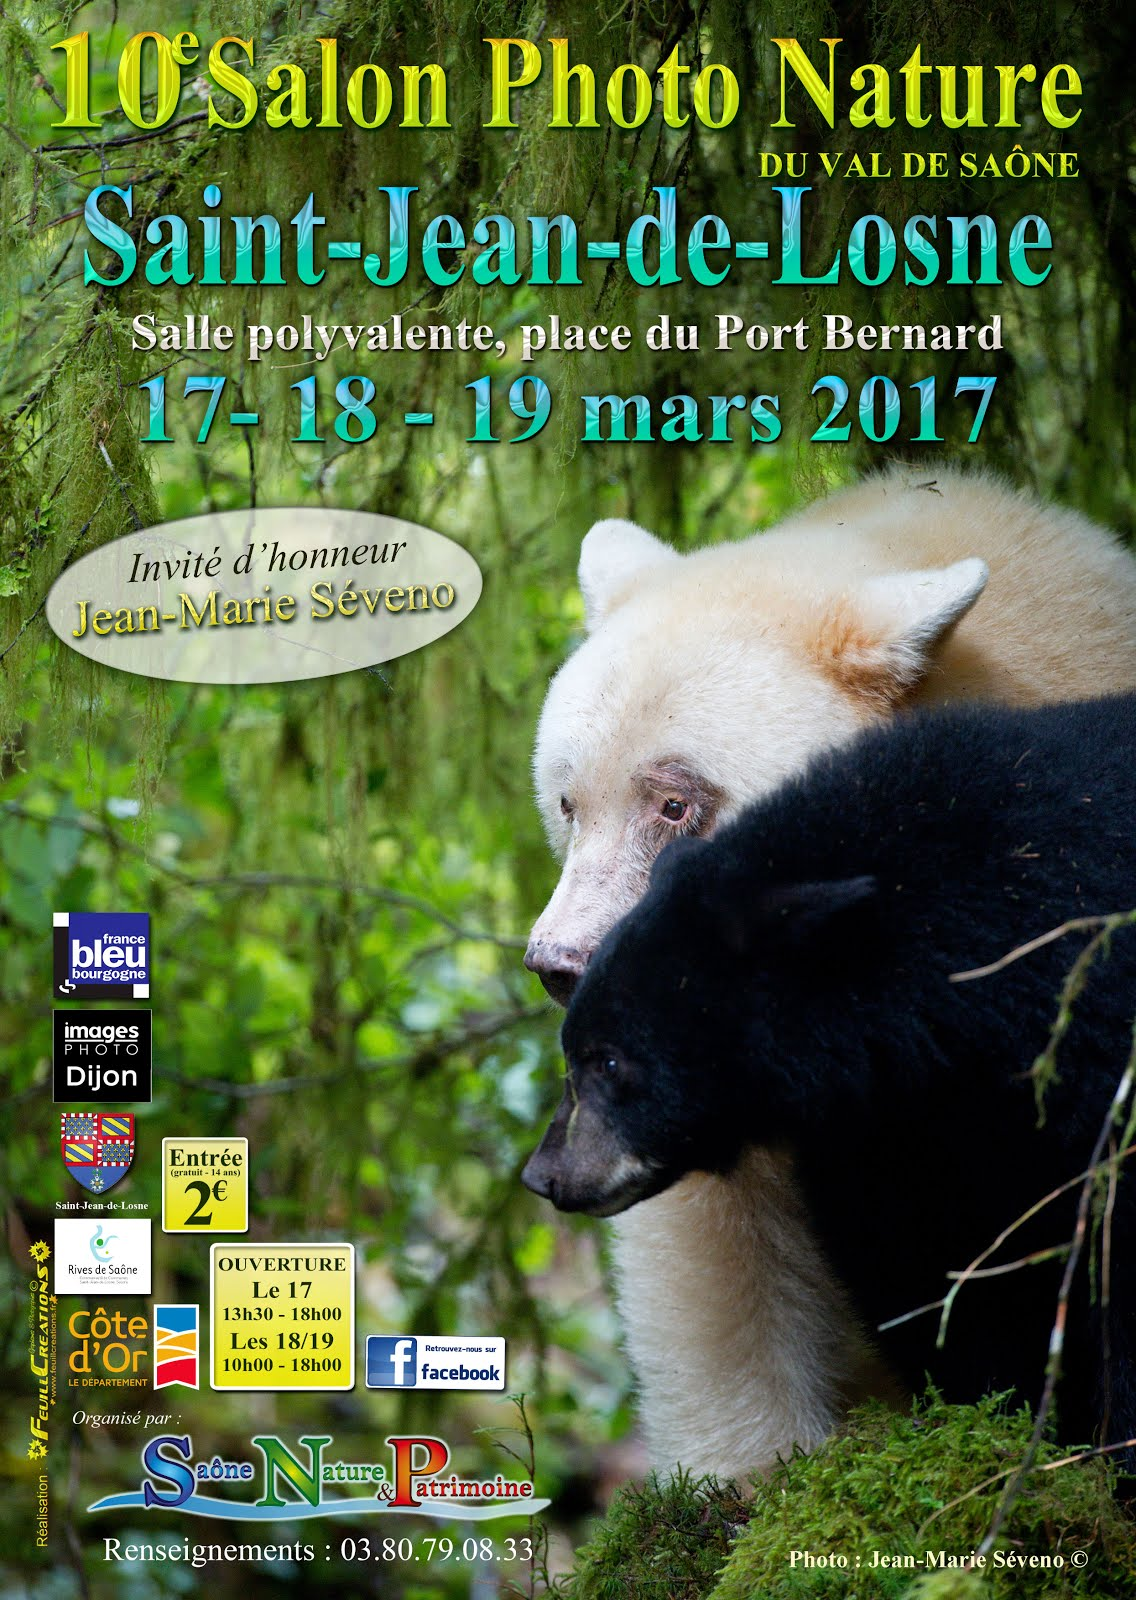 L'affiche du 10e Salon Photo Nature